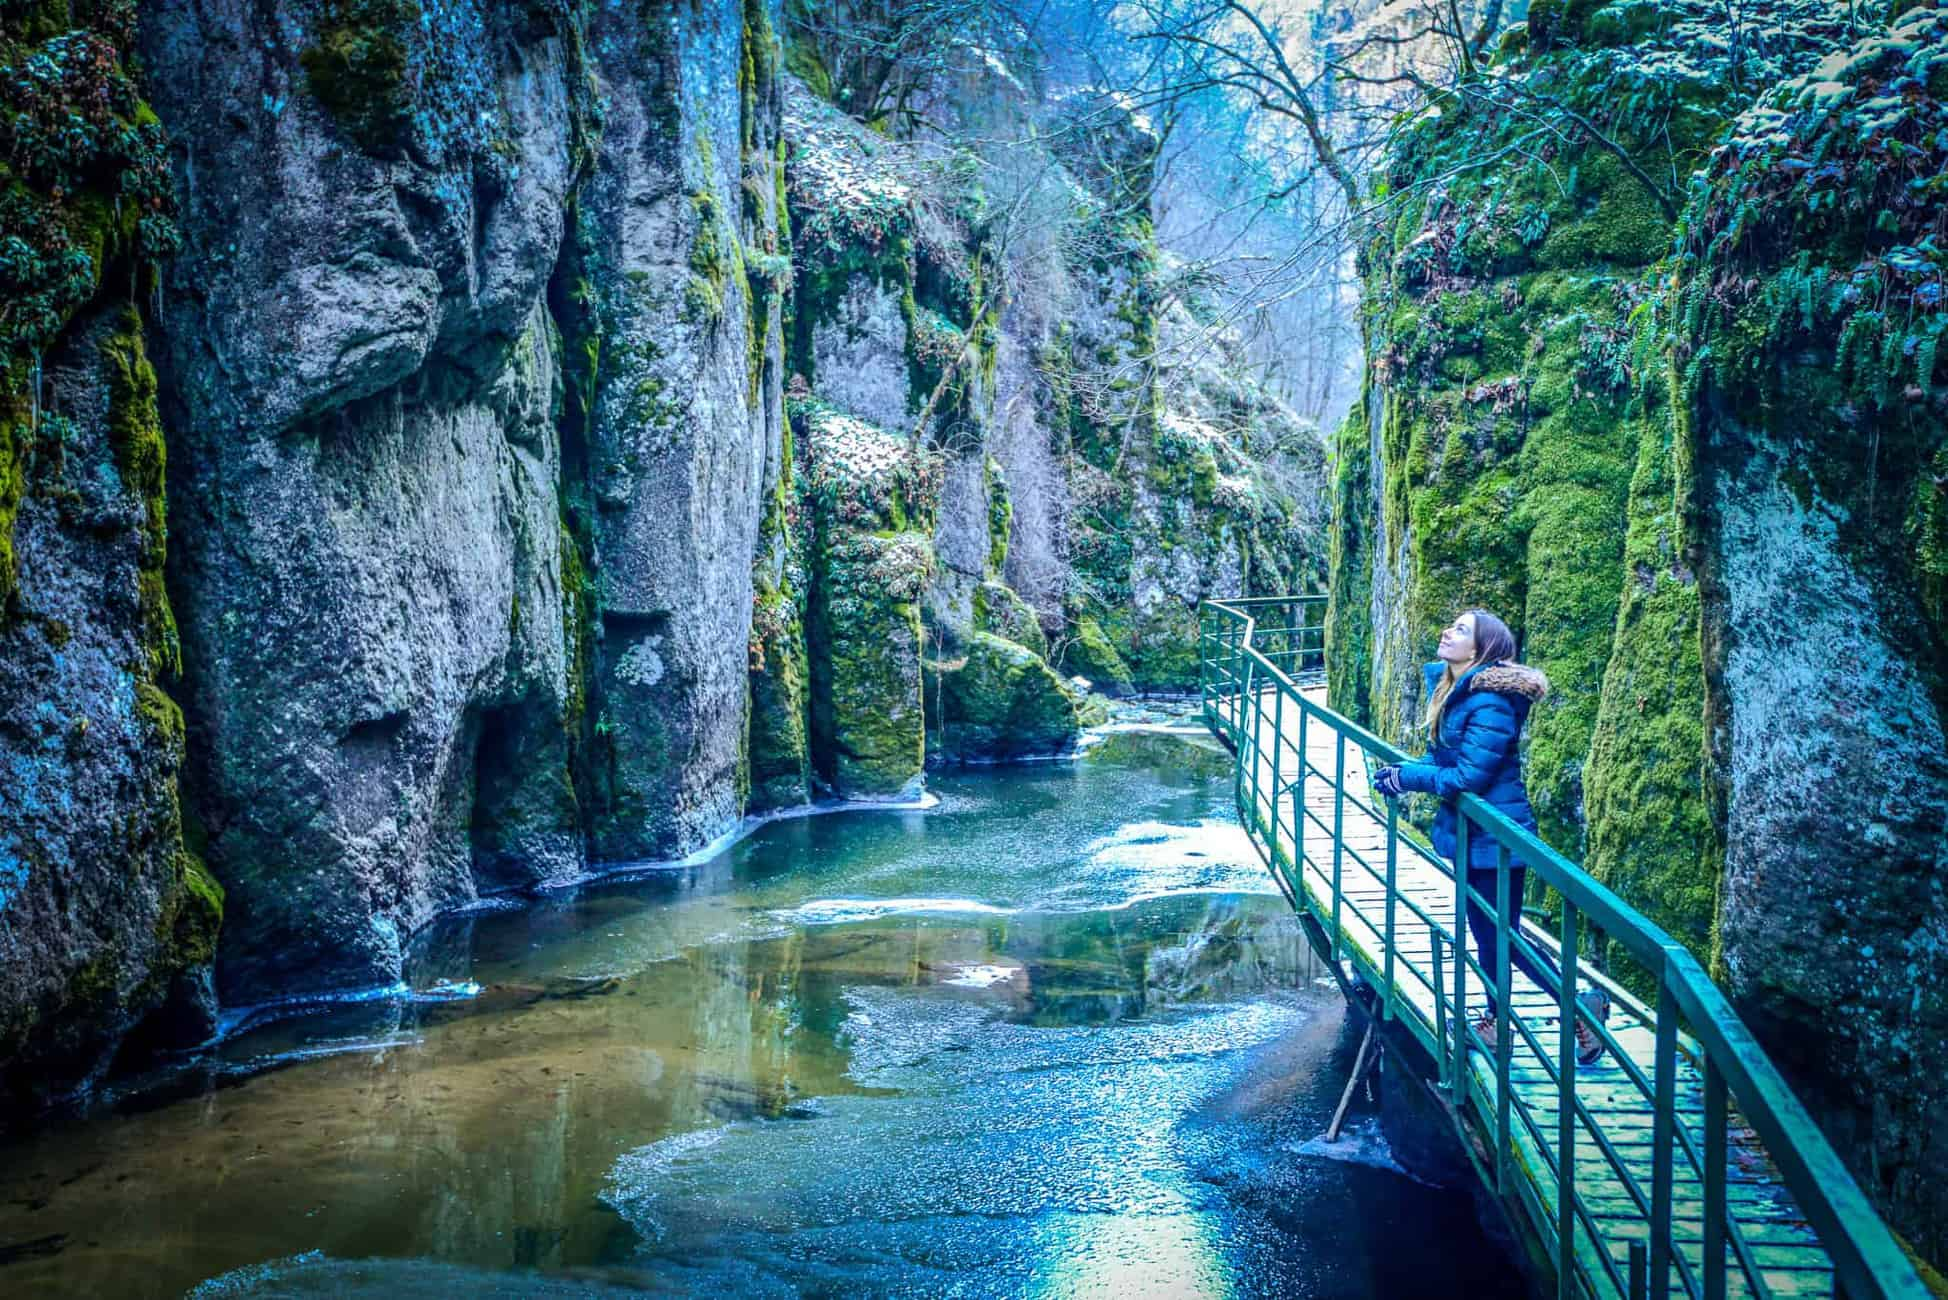 Hiking through gorges in Smolyan Bulgaria. Travel to Devin to find this place.